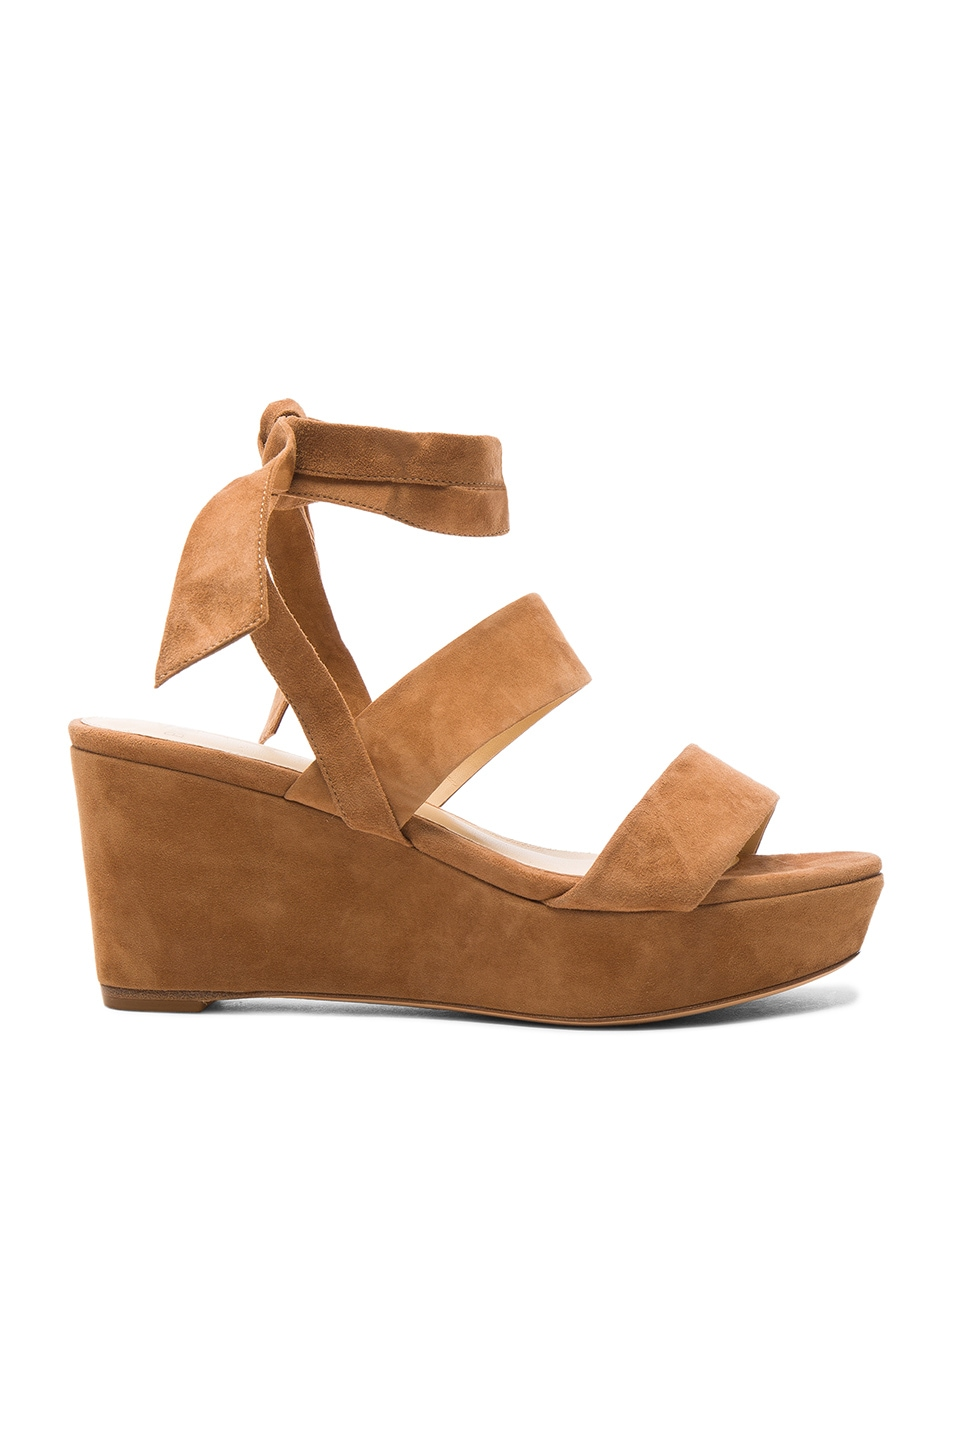 Image 1 of Alexandre Birman Suede Luma Wedges in Beige